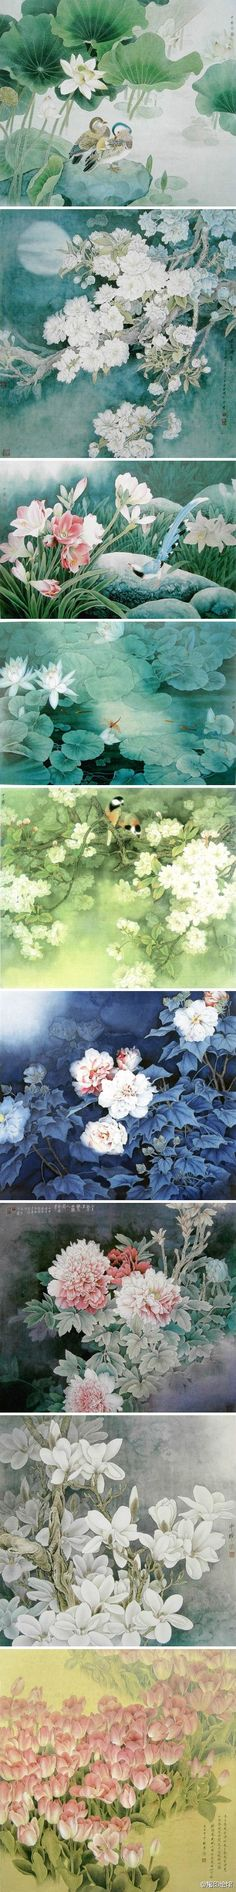 Chinese brush paintings: